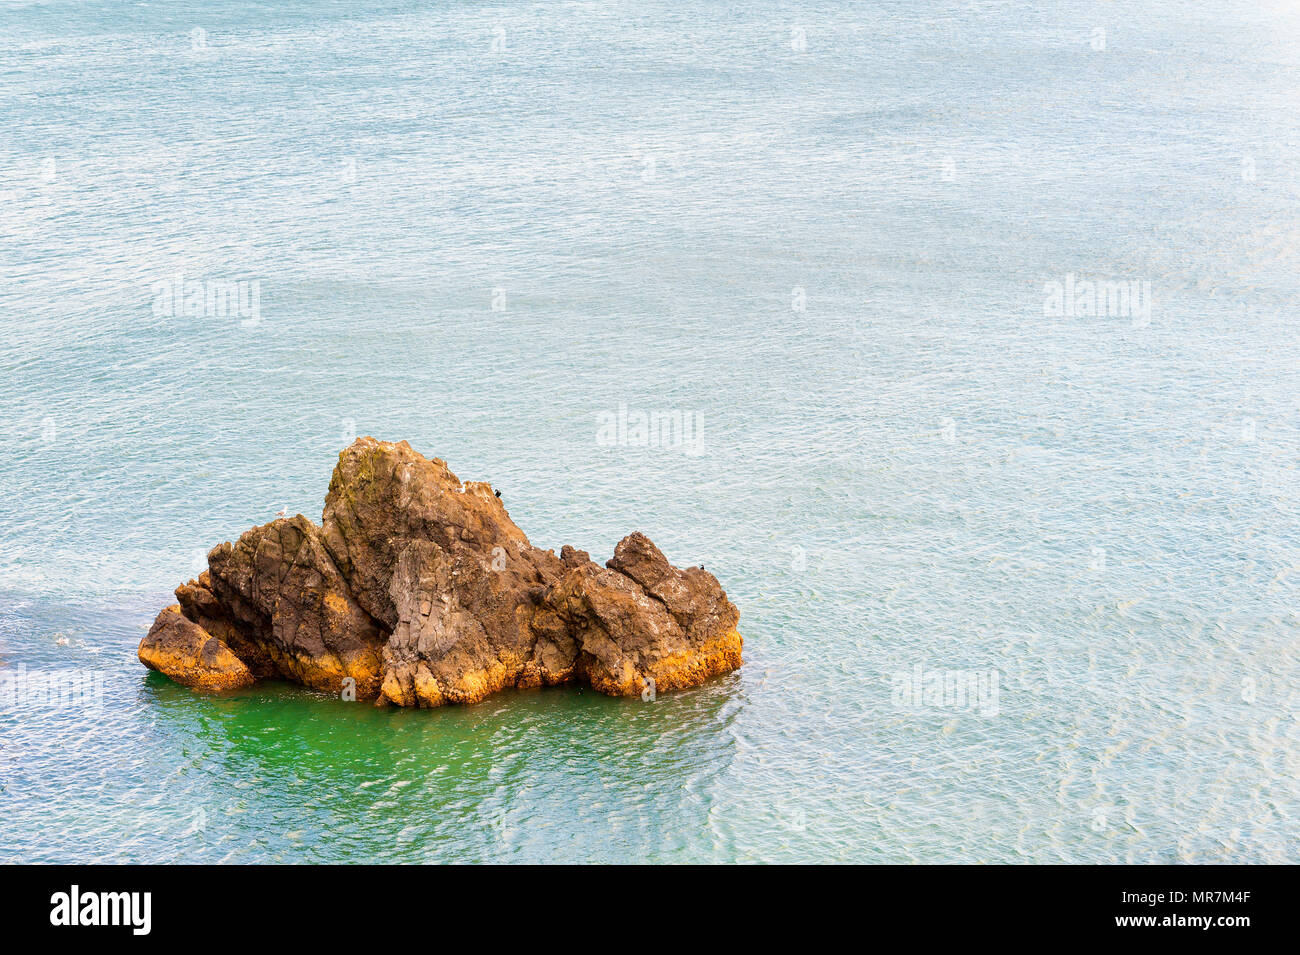 Copyspace available in this coastal landscape image of geological featured rock island surrounded by the Pacific Ocean on the Oregon Coast. - Stock Image